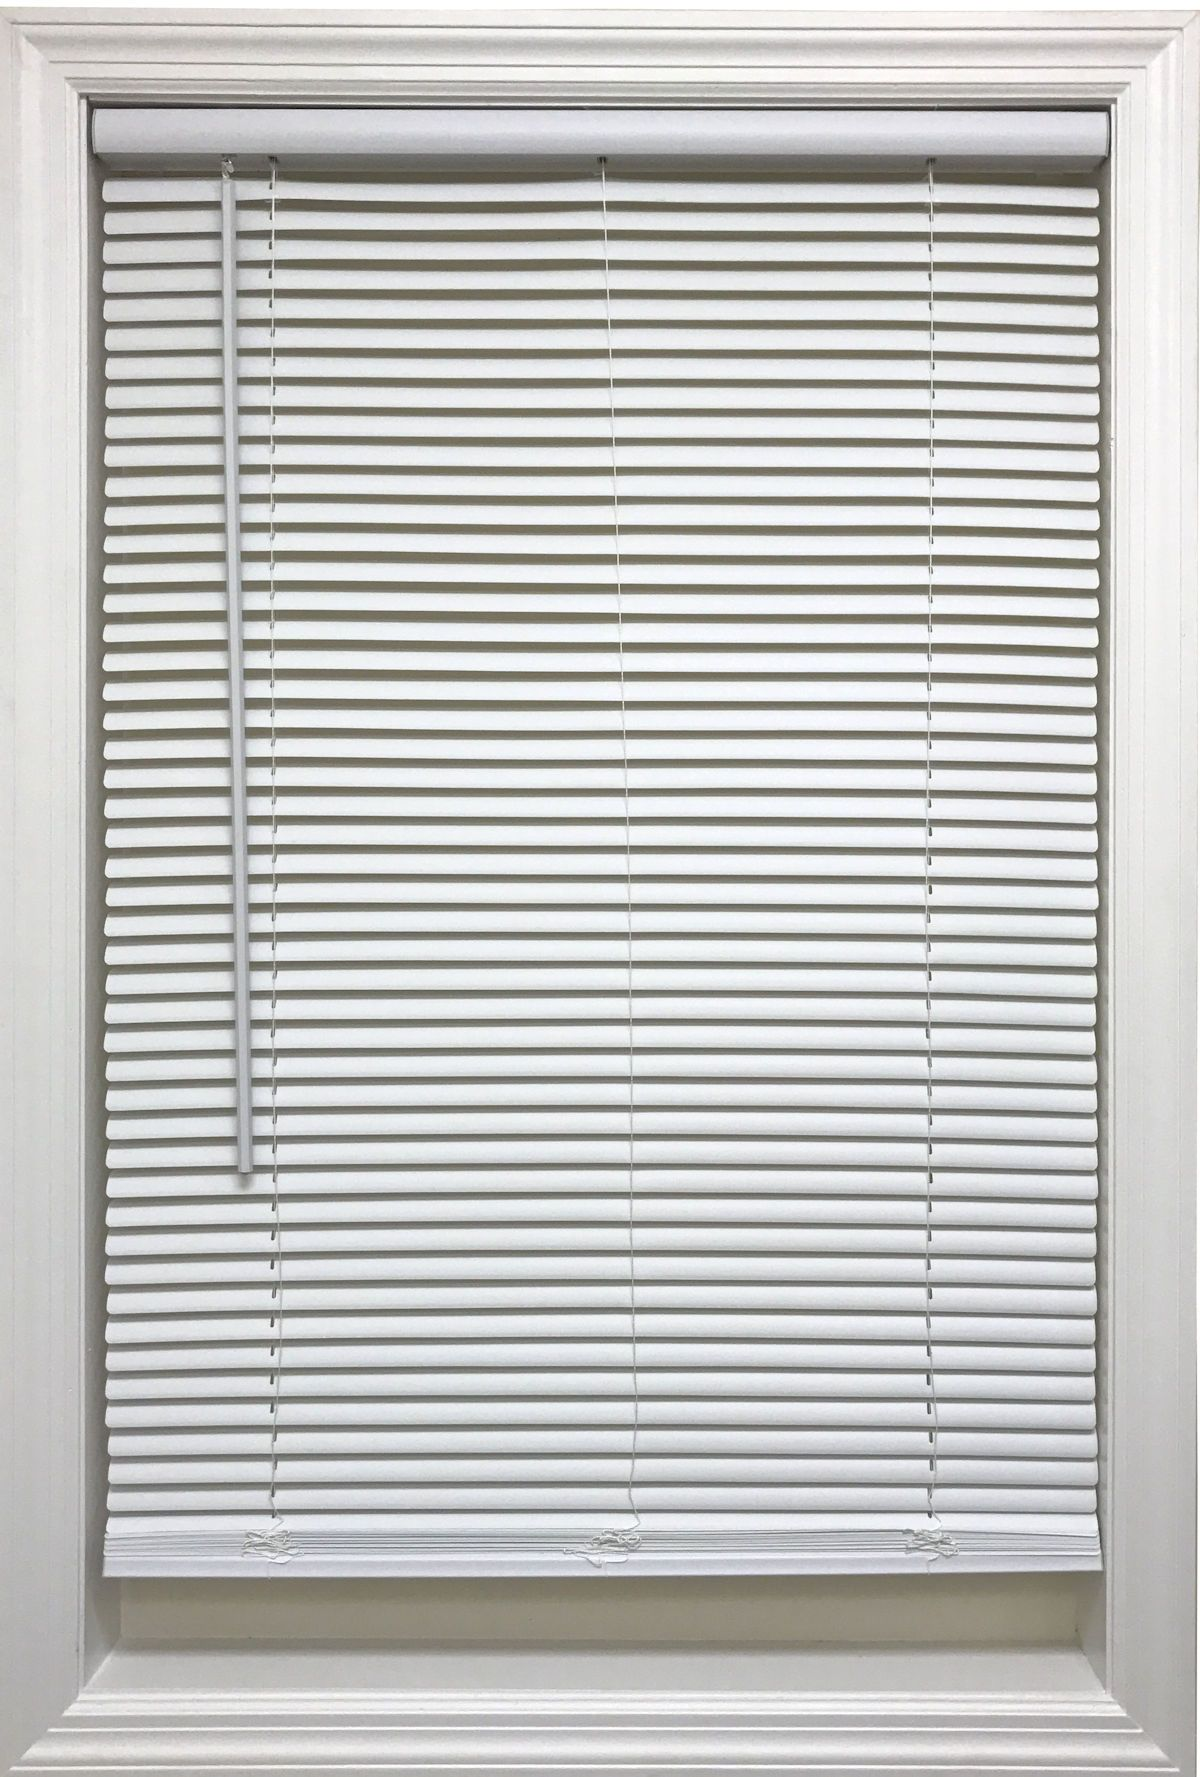 Cordless 1 Vinyl Mini Blinds White In 2020 Vinyl Mini Blinds Mini Blinds Blinds